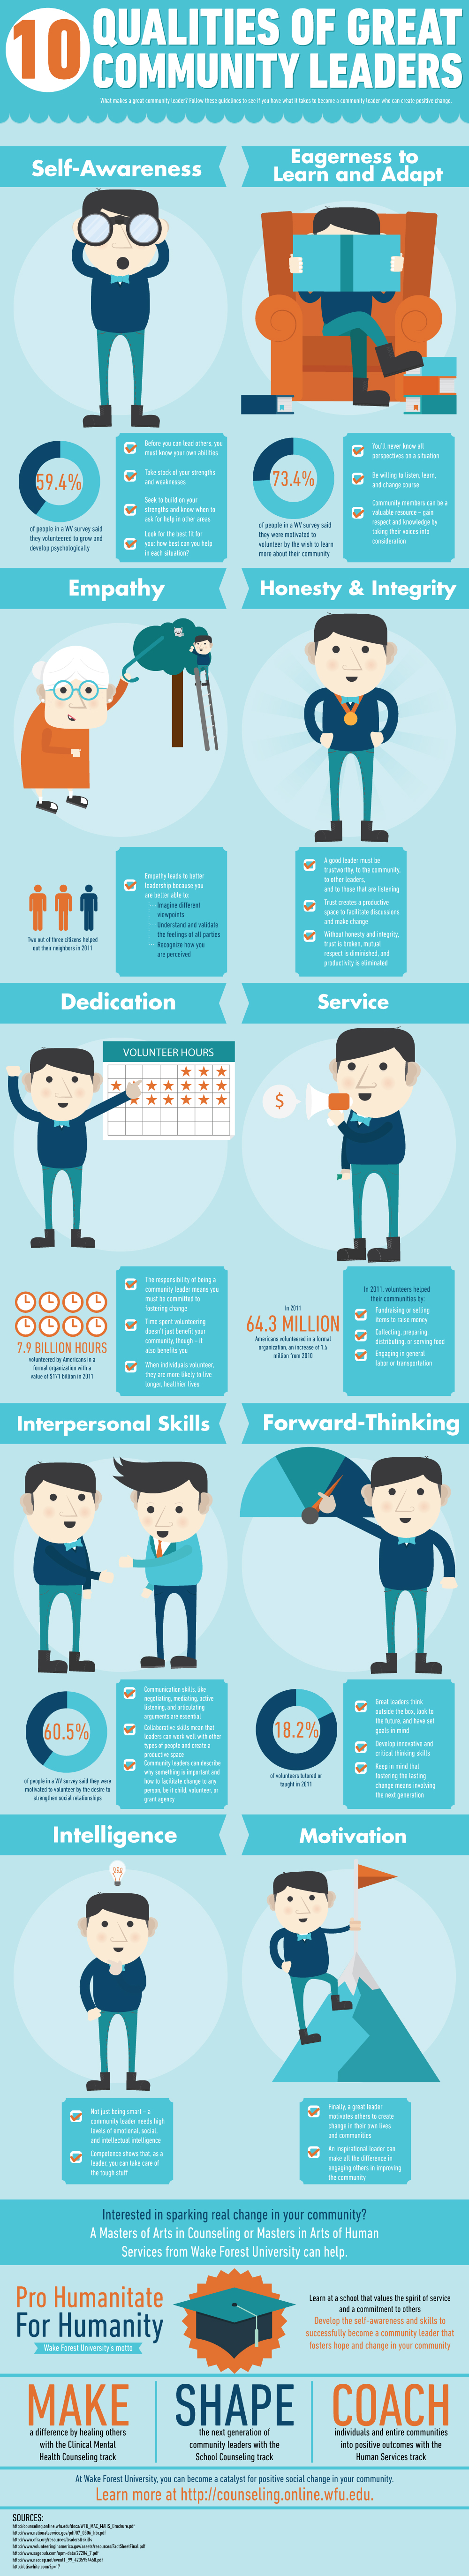 skills education and career wfu macmahs infographic qualities great community leaders